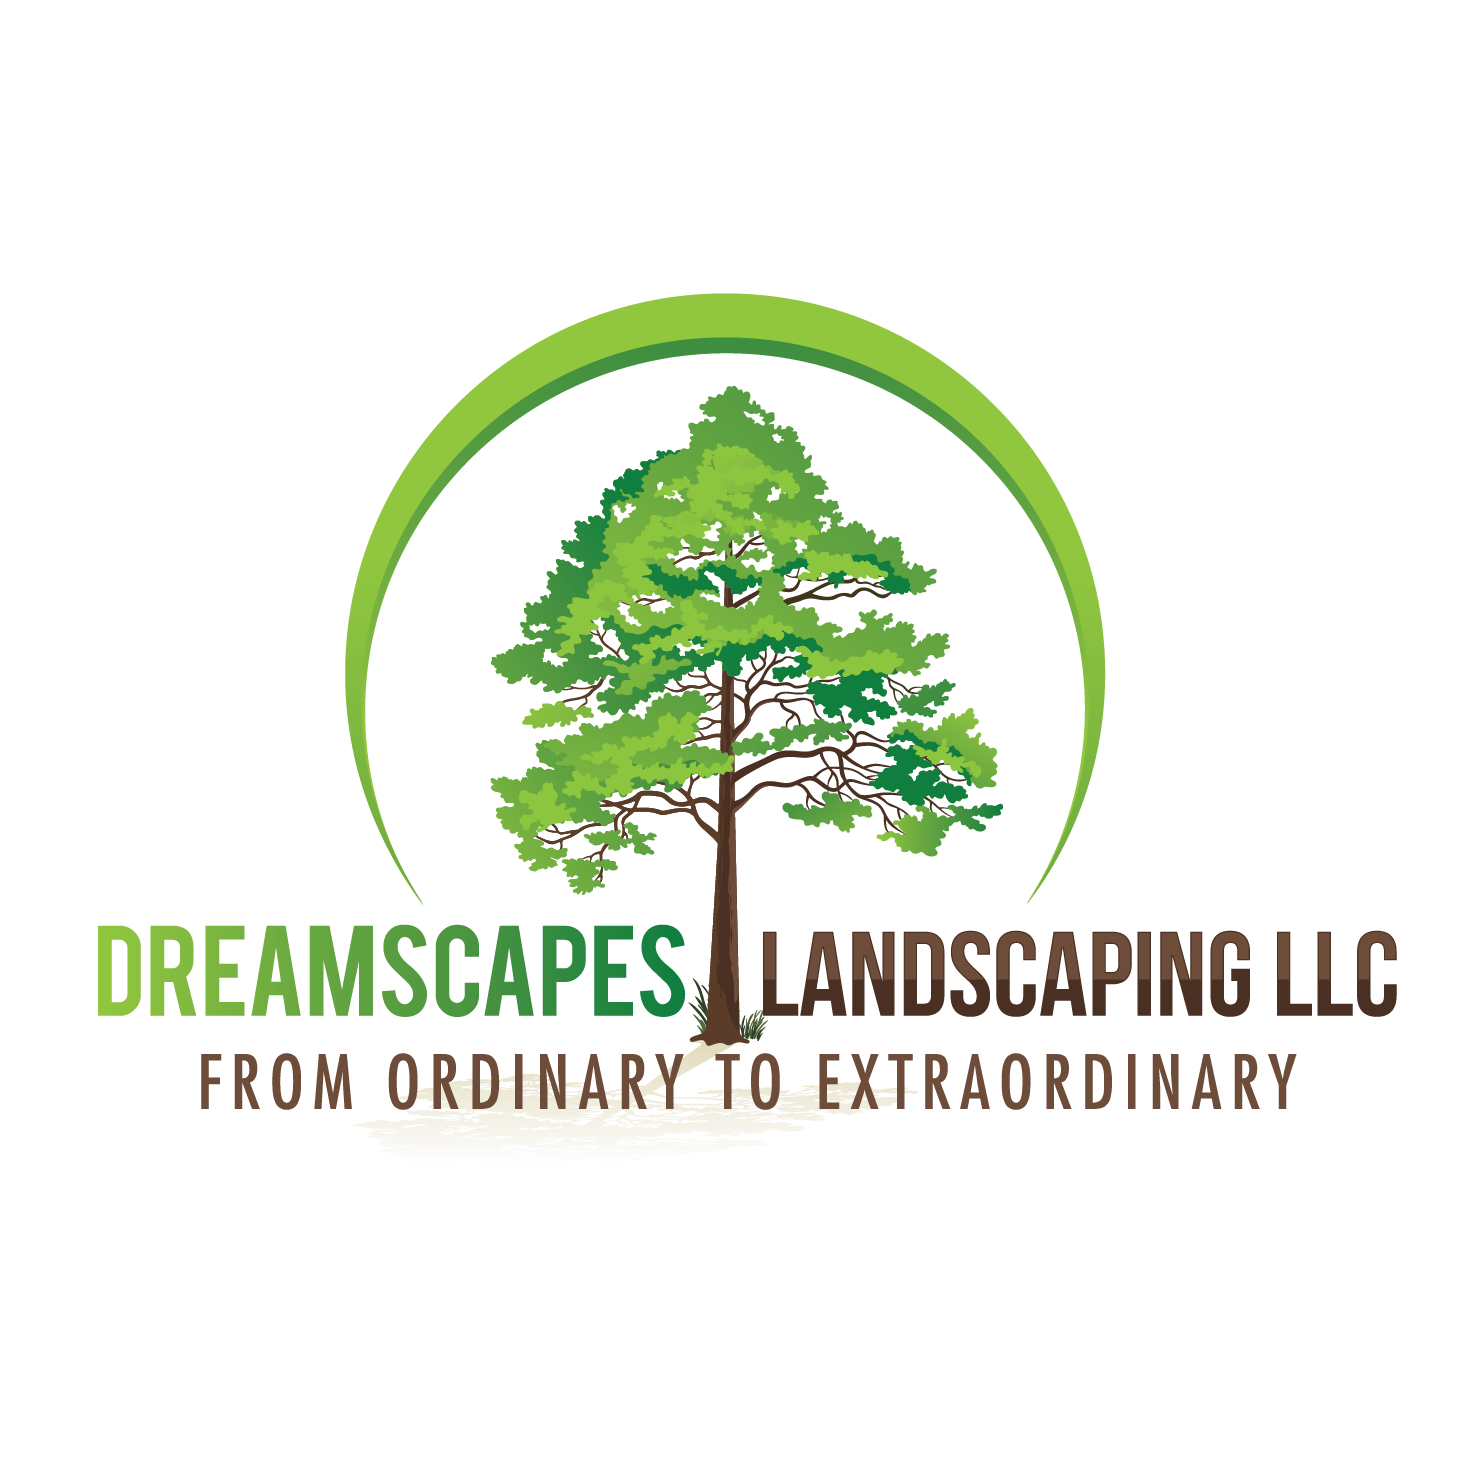 DreamScapes Landscaping, LLC